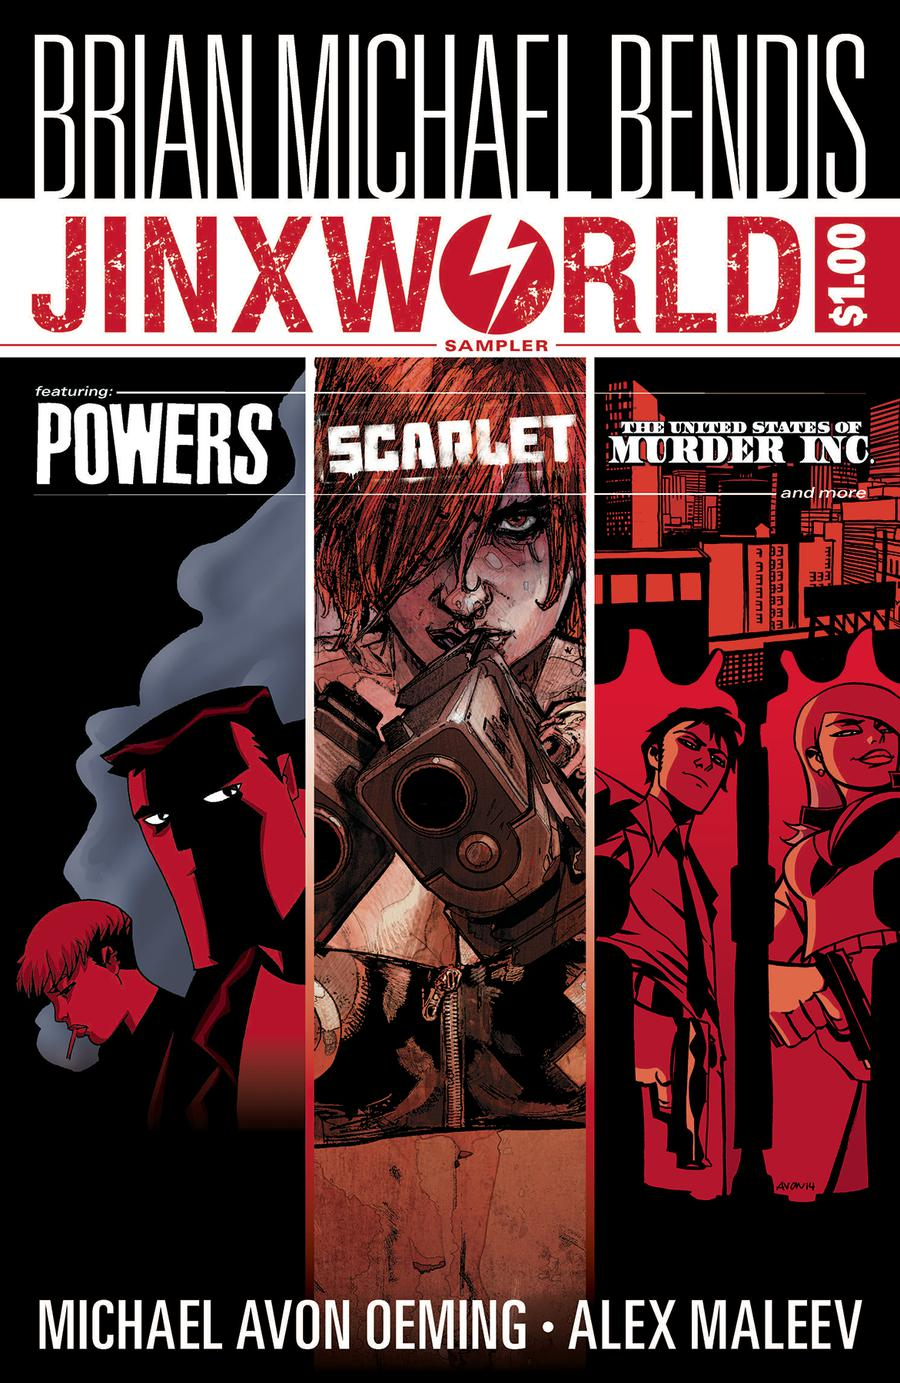 Jinxworld Sampler #1